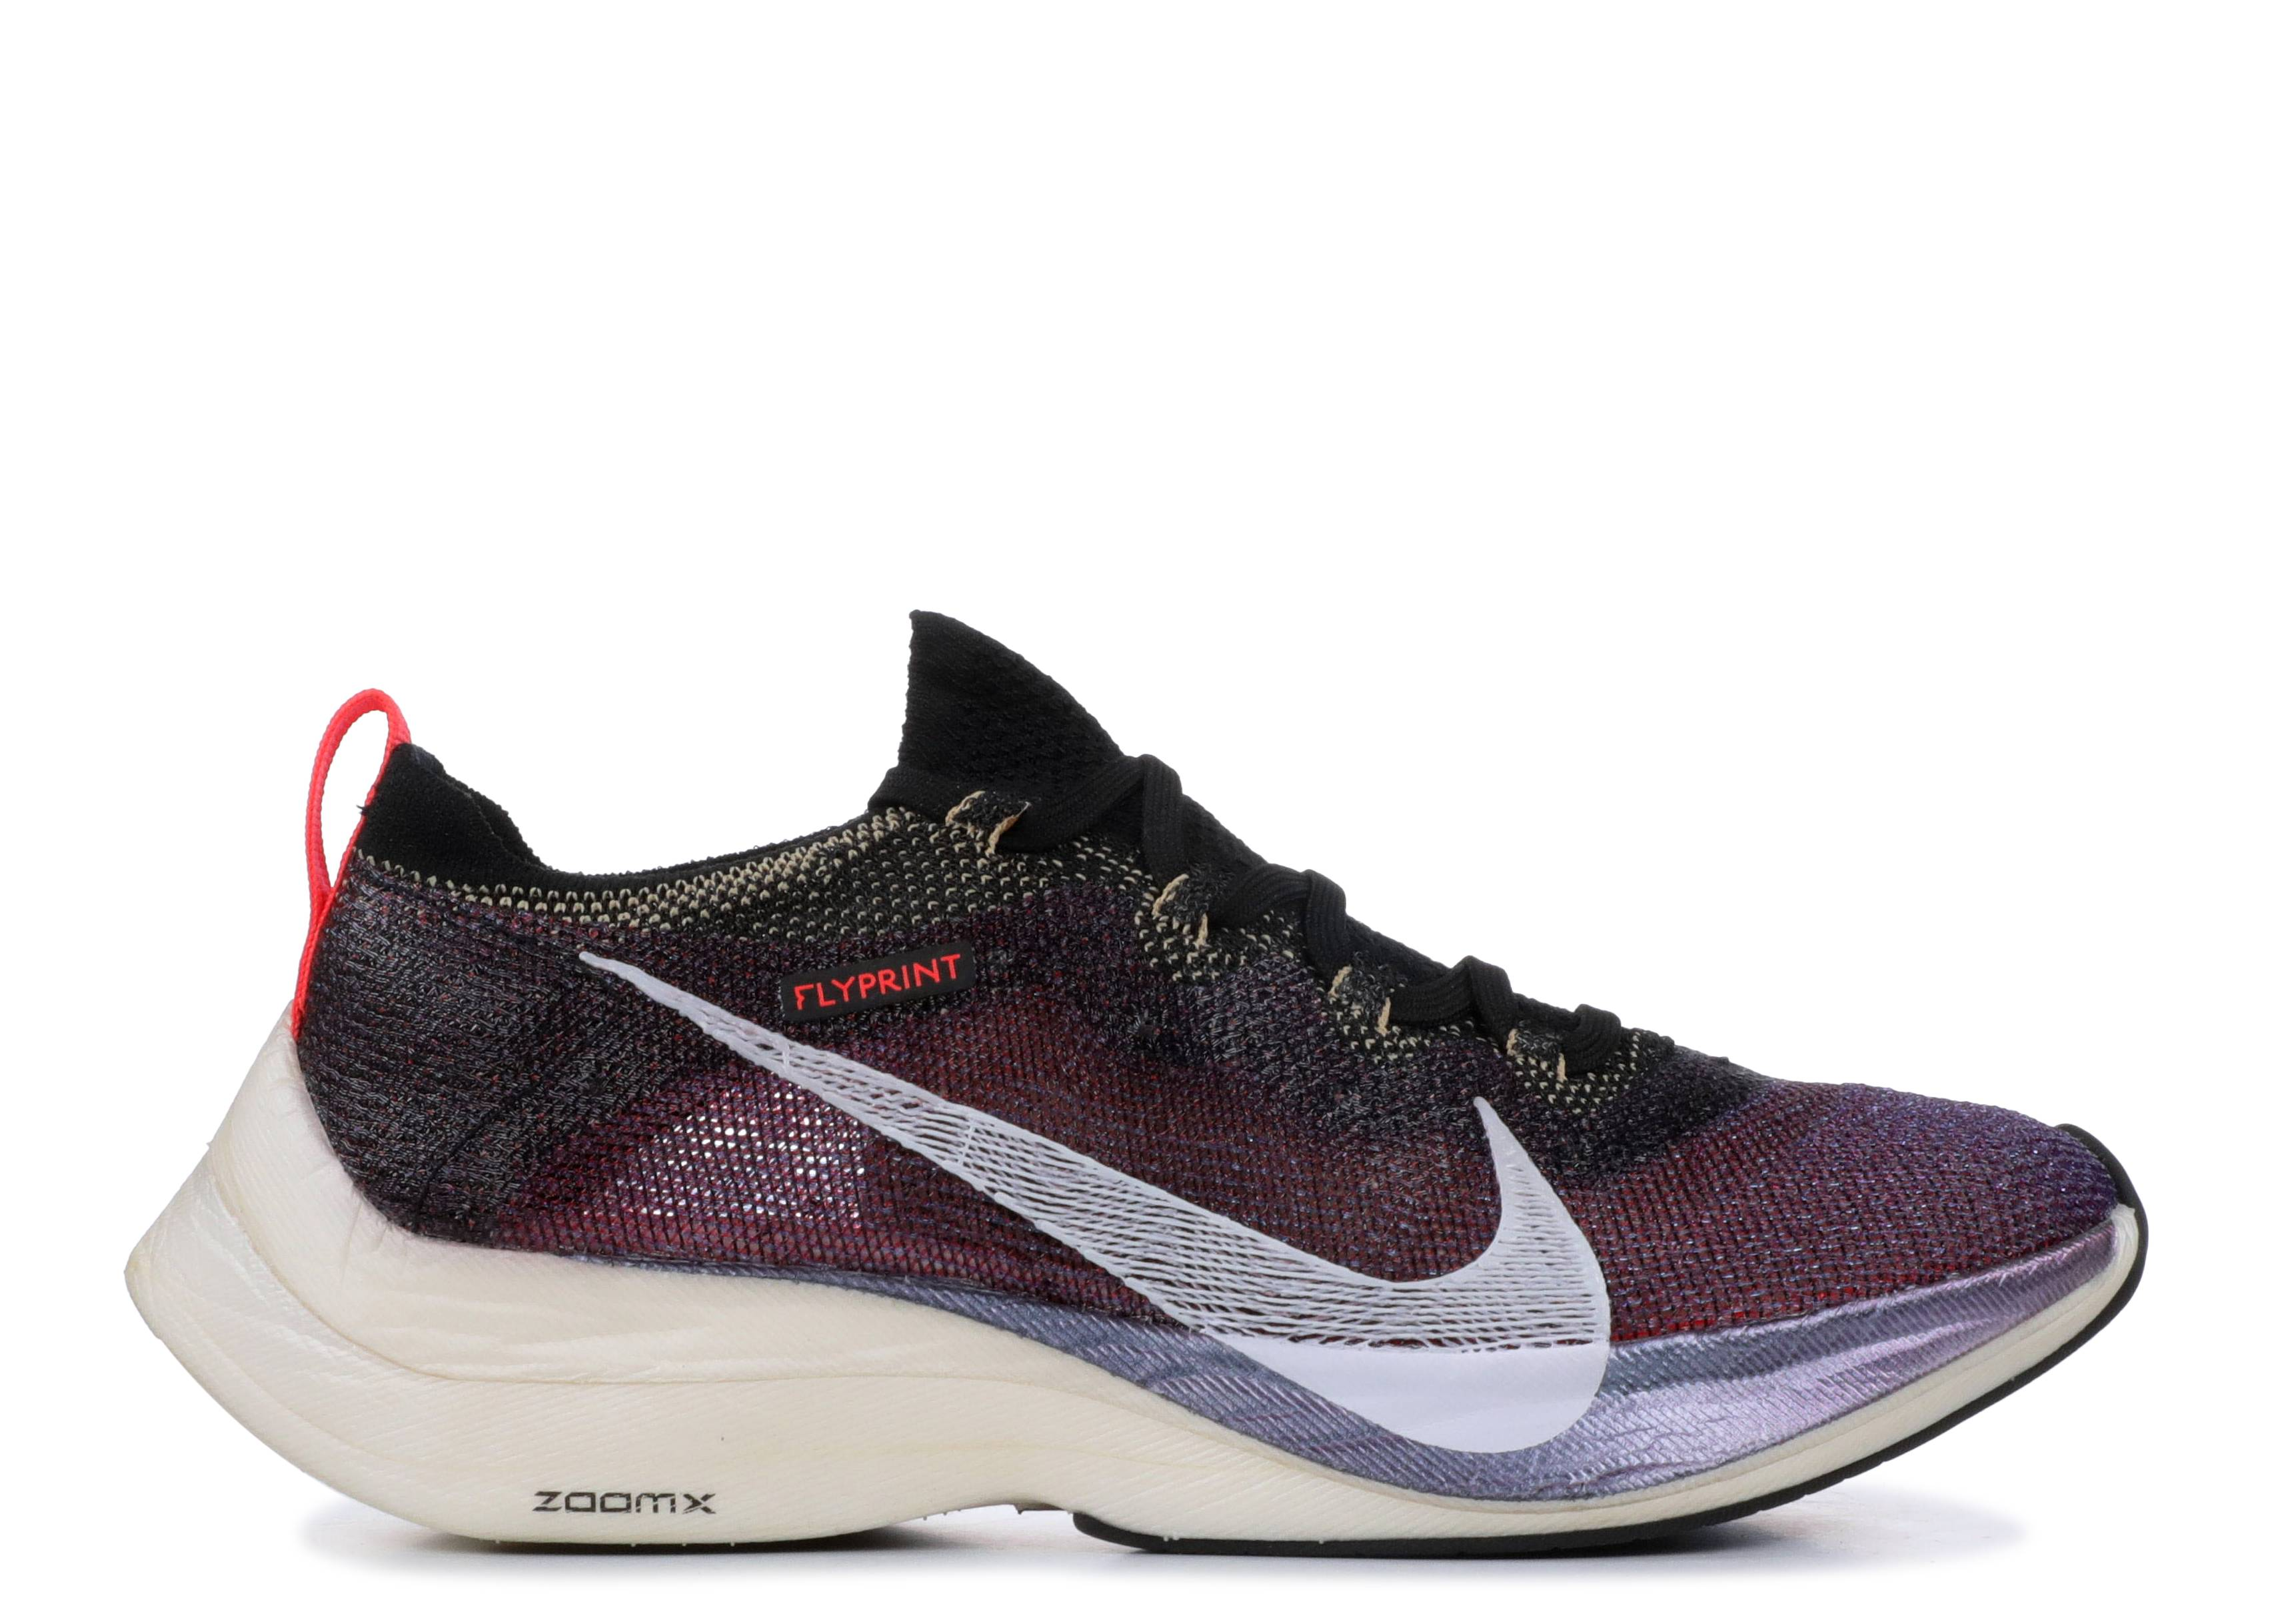 "nike zoom vaporfly elite flyprint ""chicago marathon"""